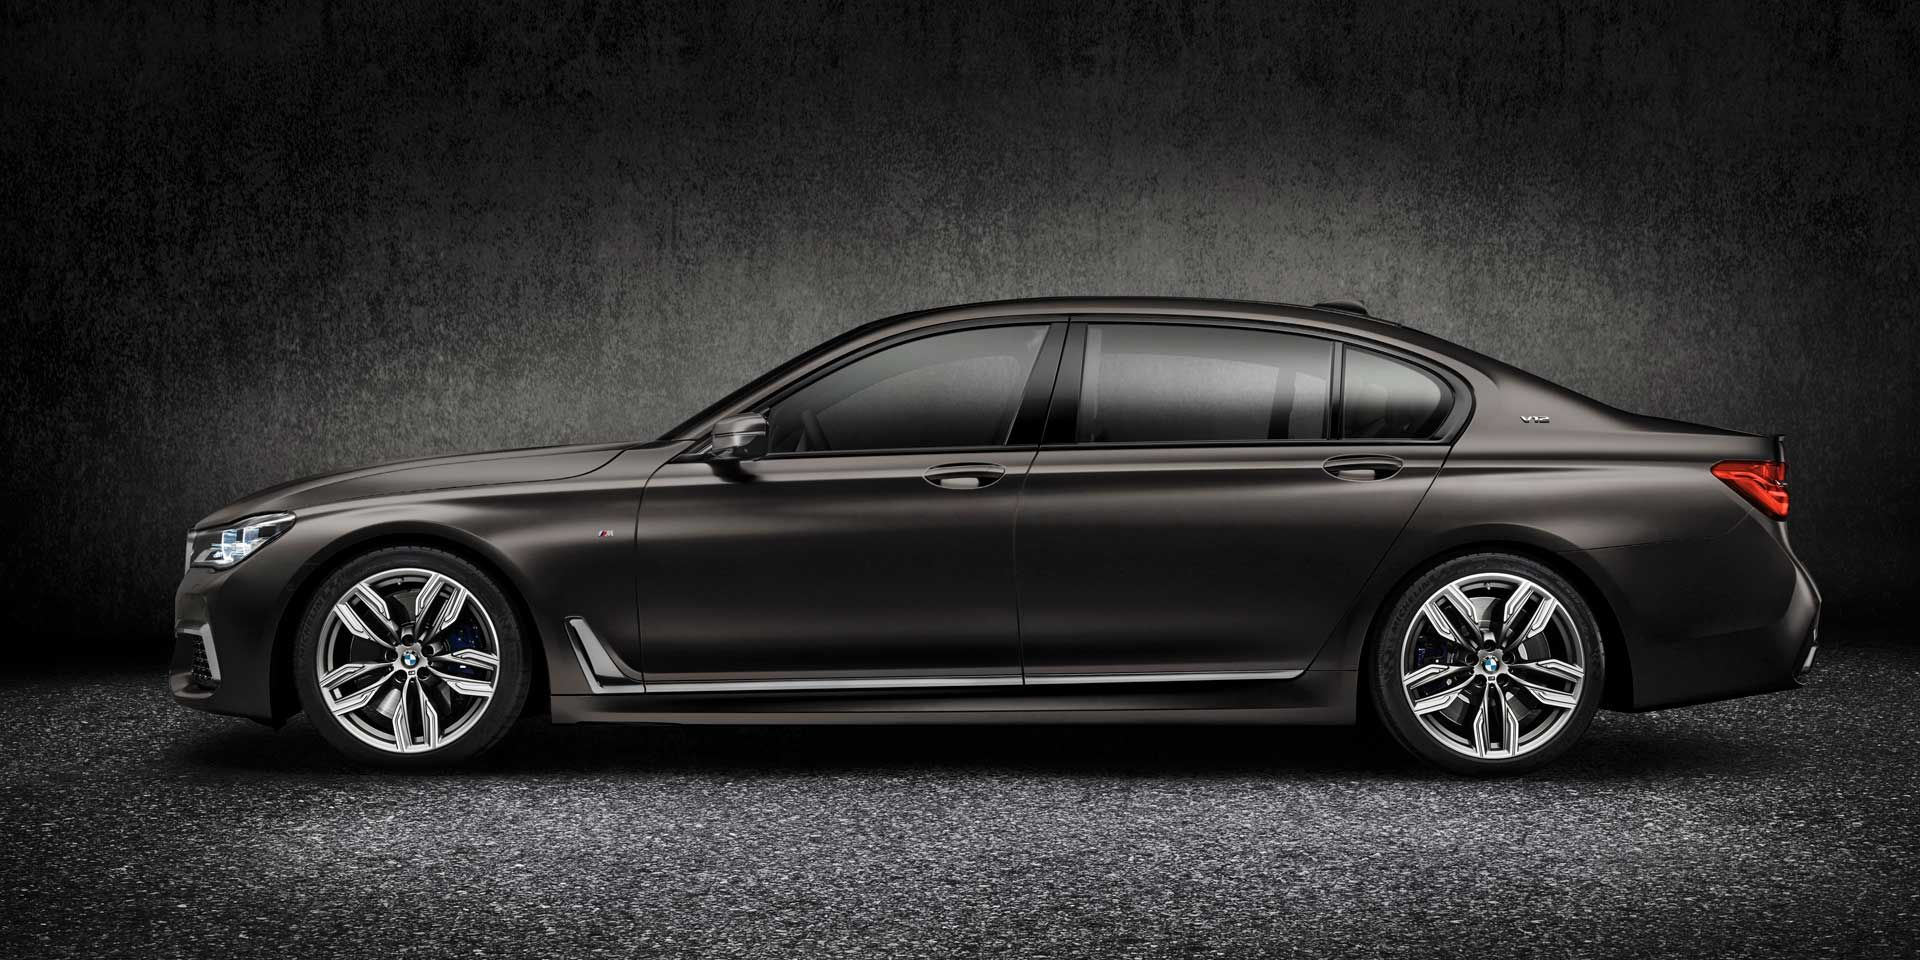 2017 Bmw 7 Series Bmw New Cars Cars For Sale